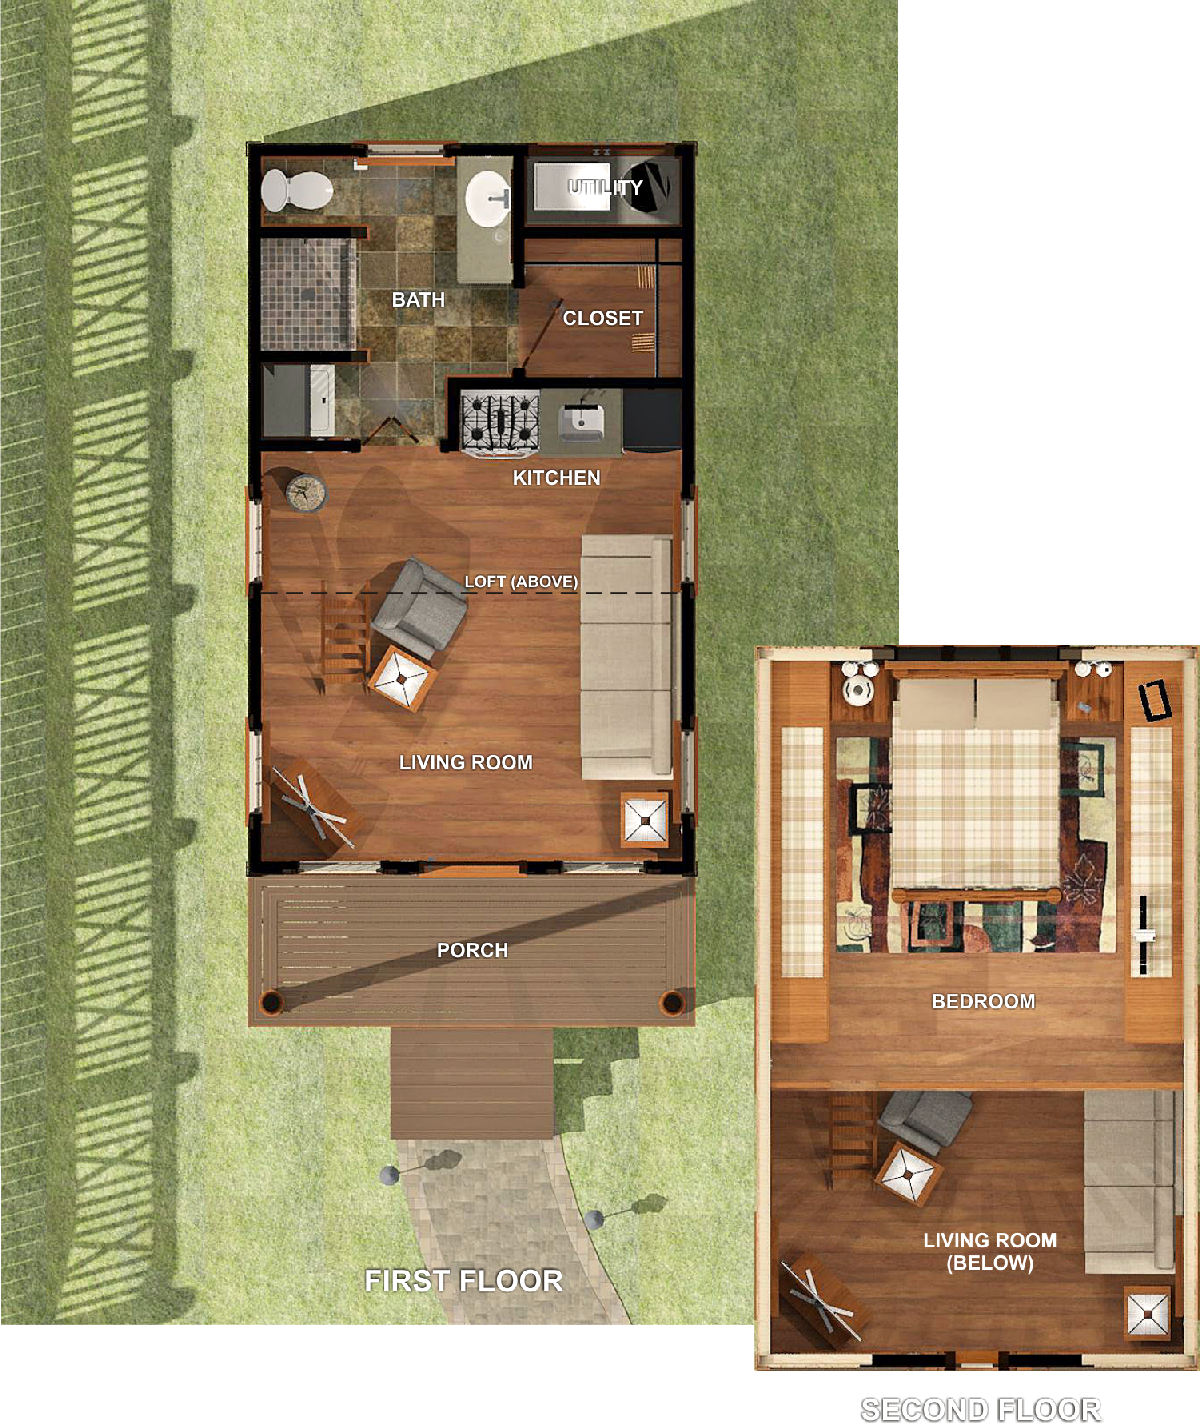 Texas tiny homes plan 448 Small house blueprint